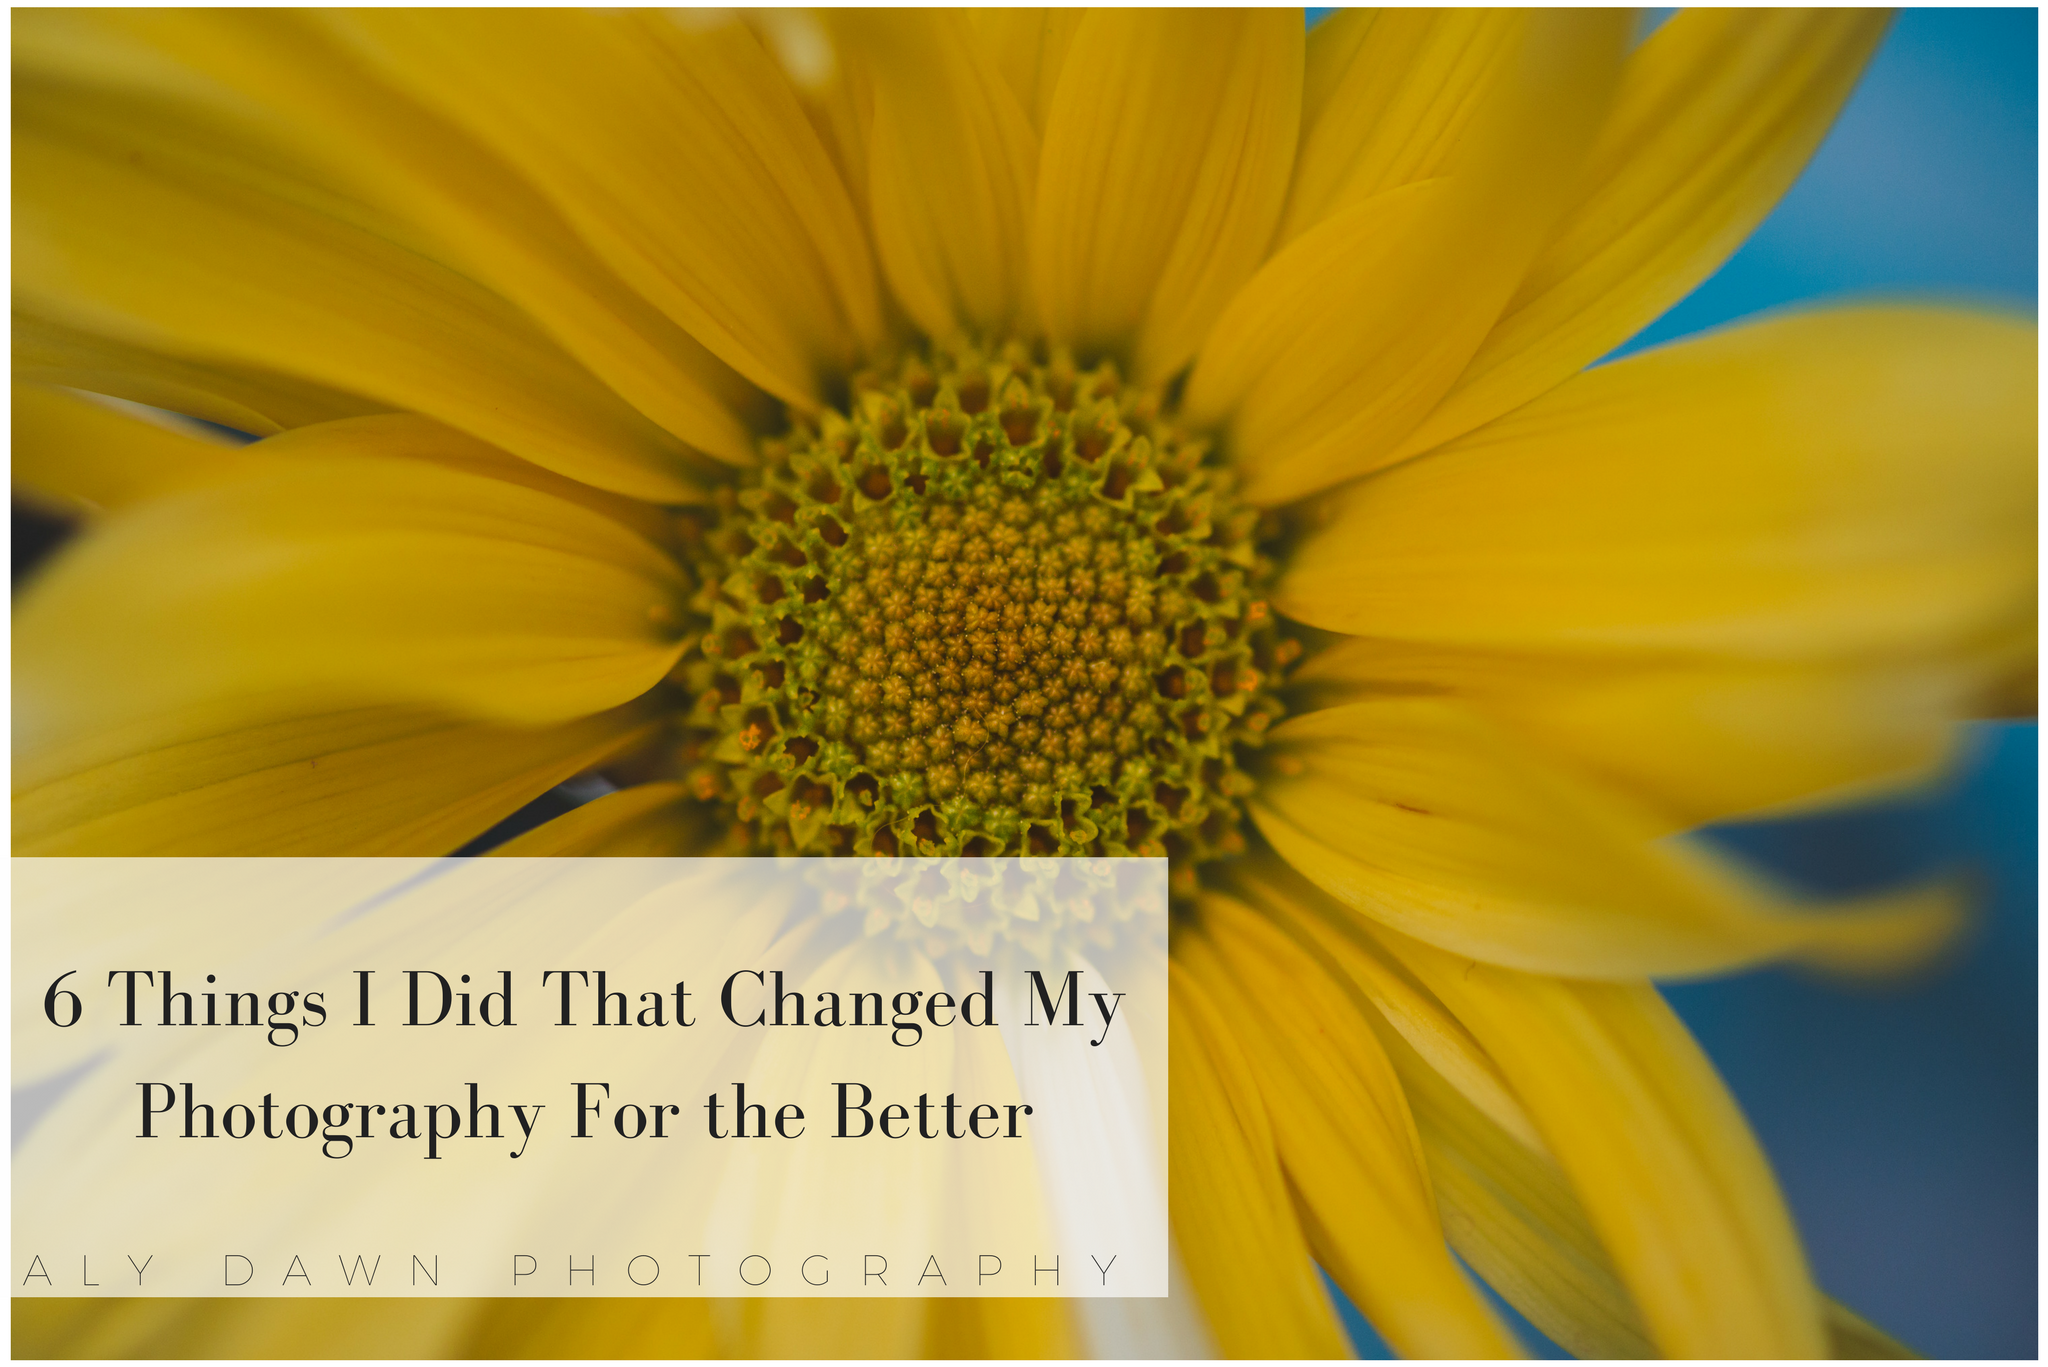 6 Things I Did That Changed My Photography for the Better